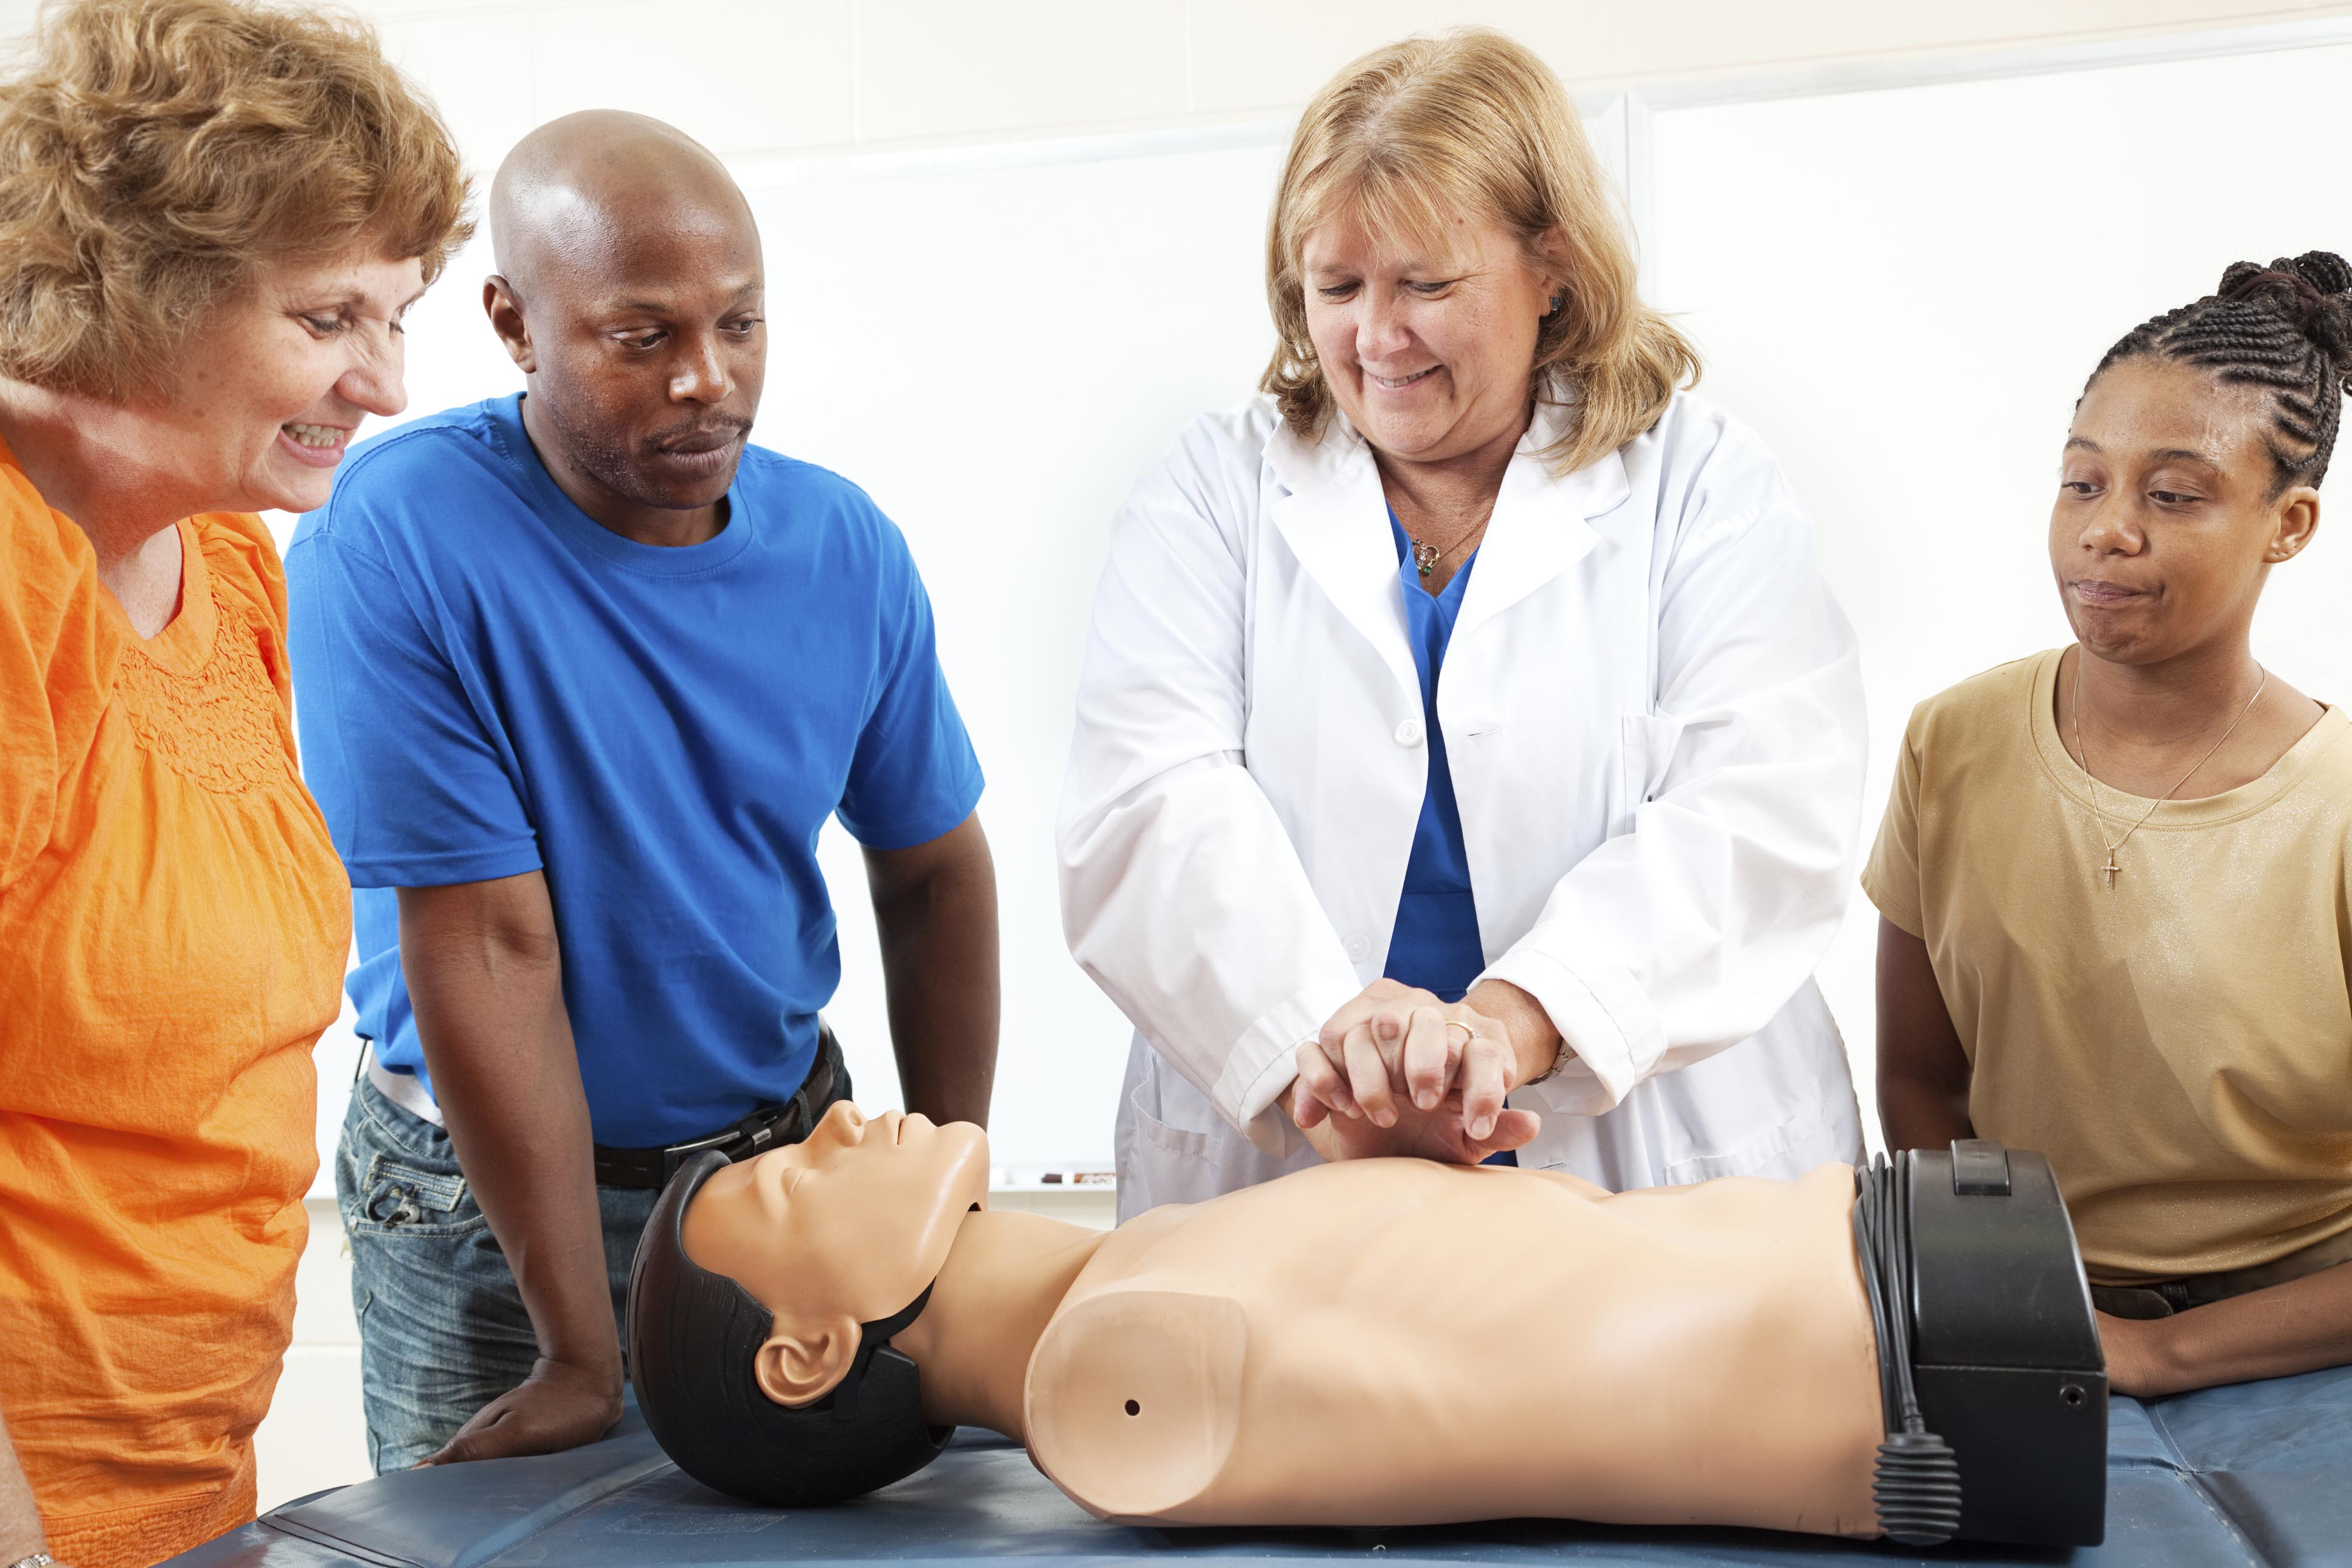 Group of people taking a first aid cpr class.